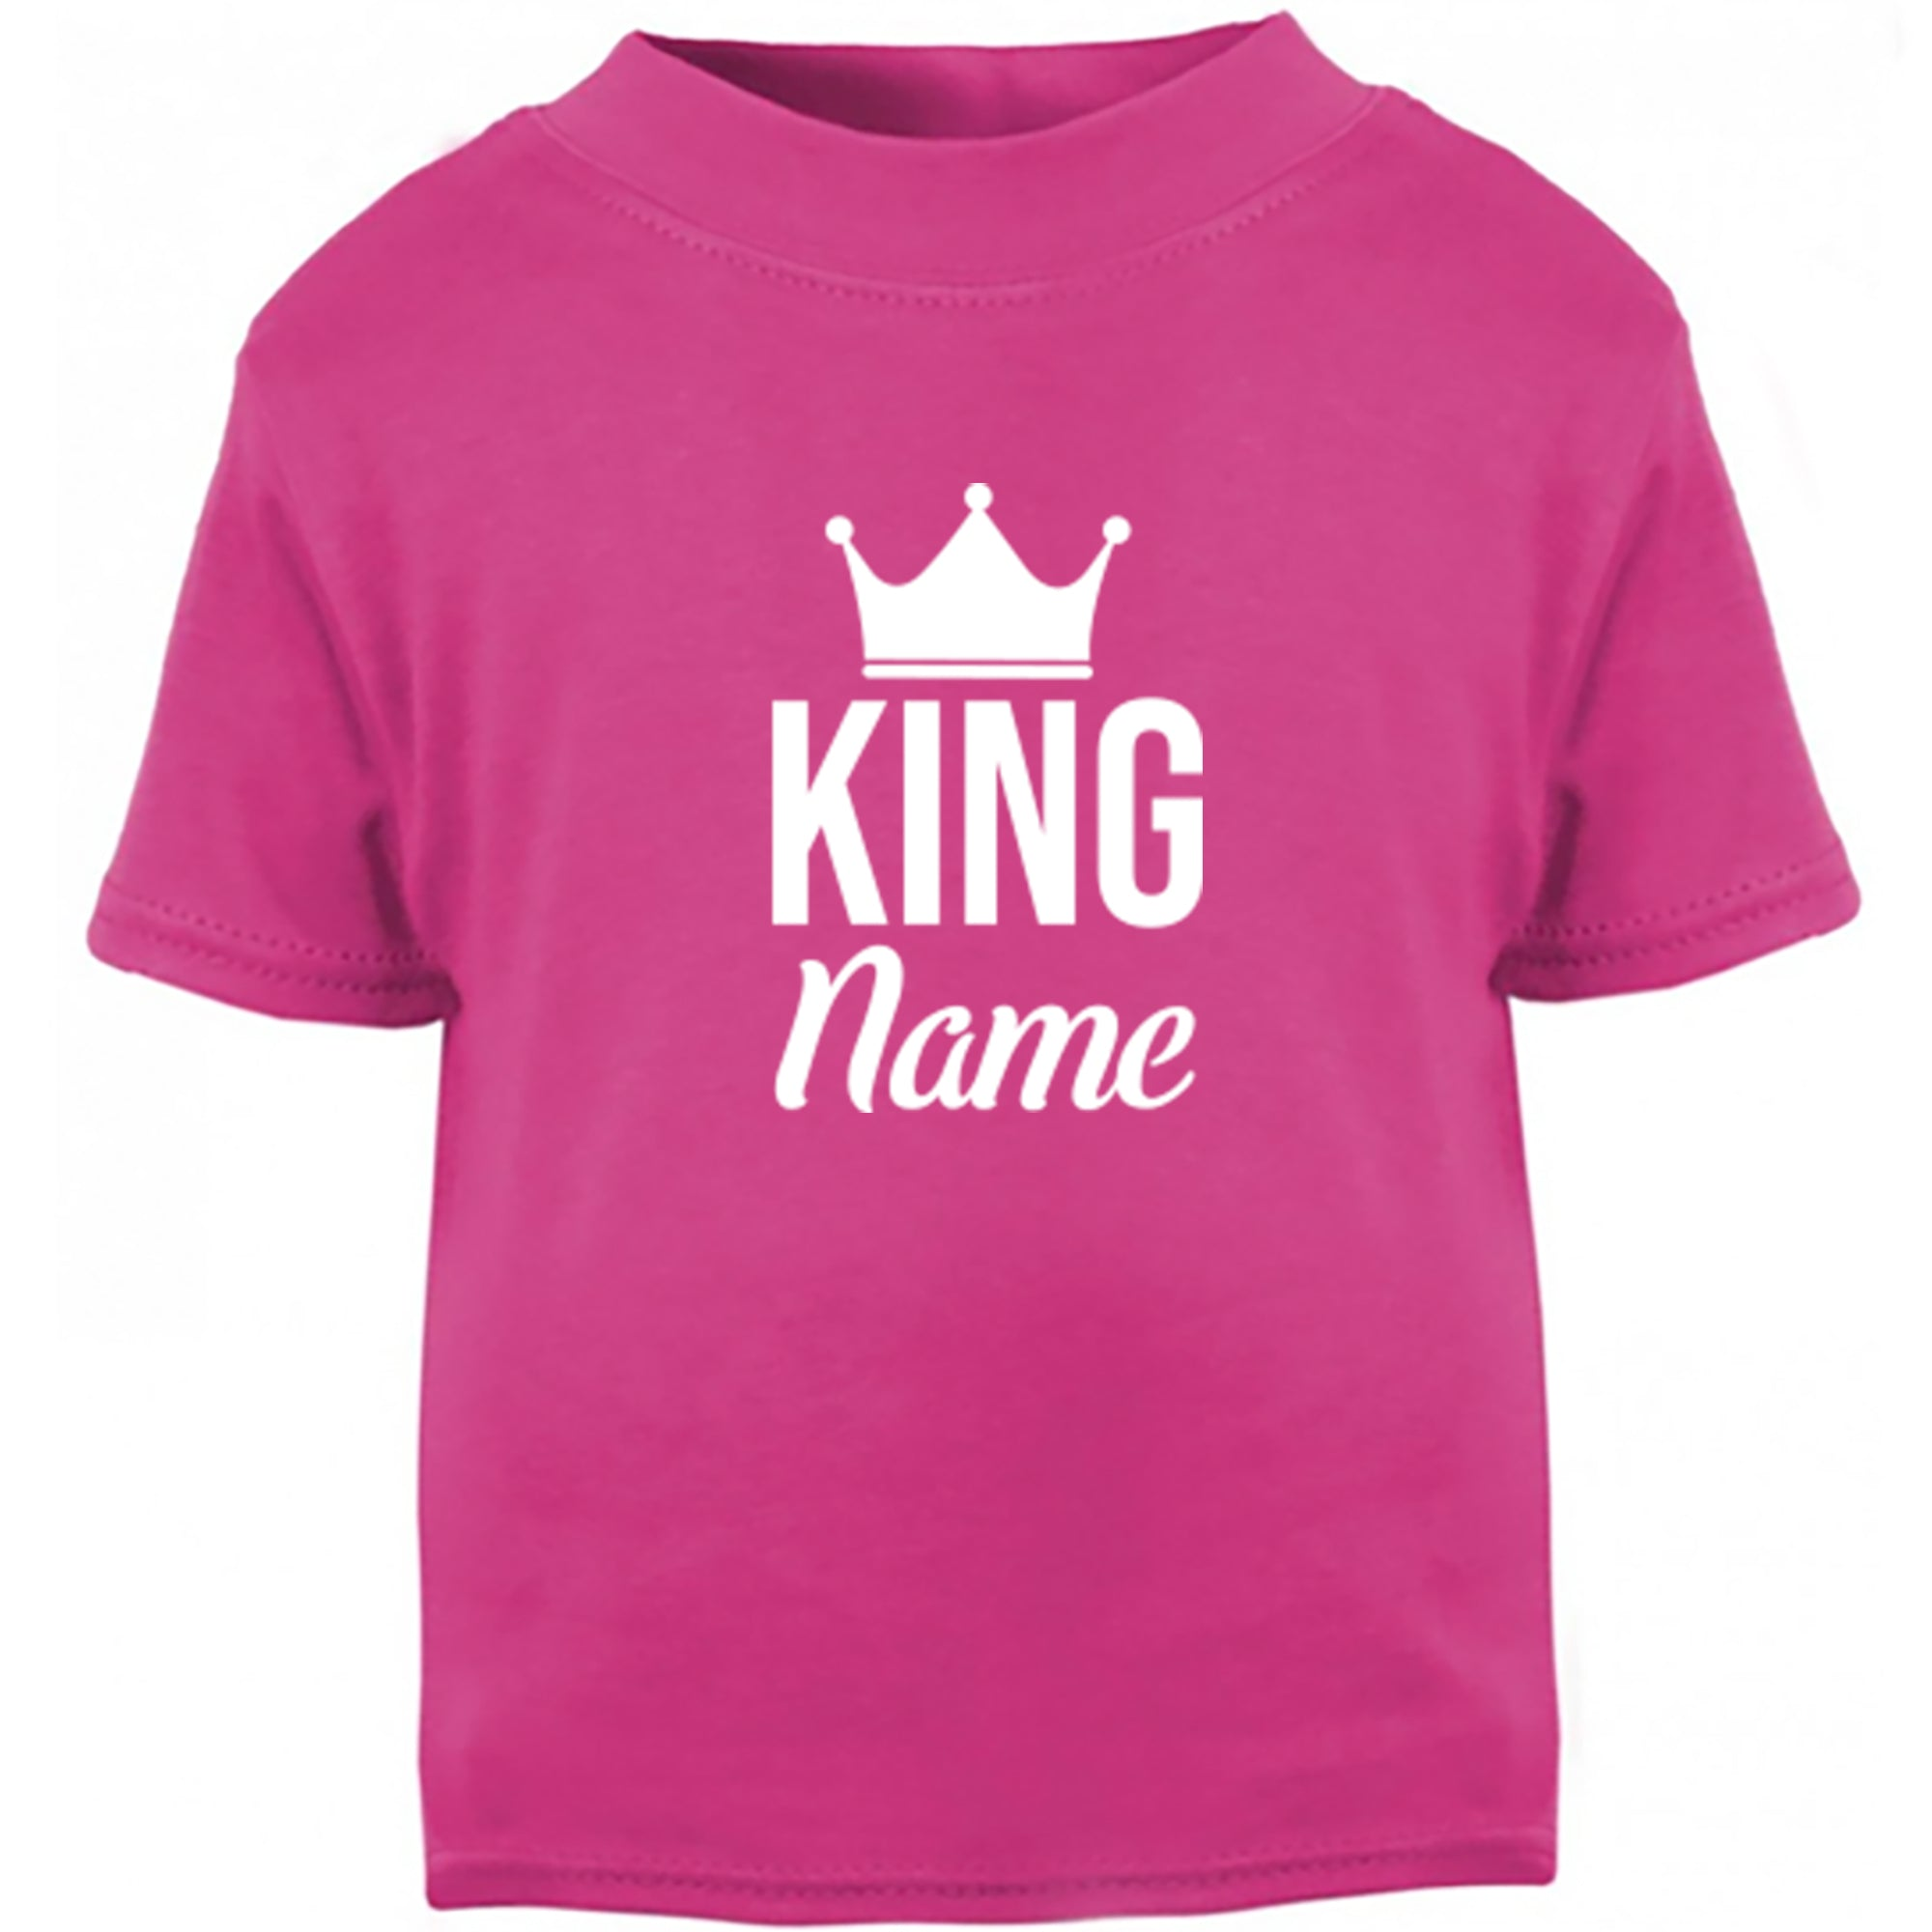 Personalised King Design Childrens Ages 3/4-12/14 Unisex Fit T-Shirt S0466 - Illustrated Identity Ltd.